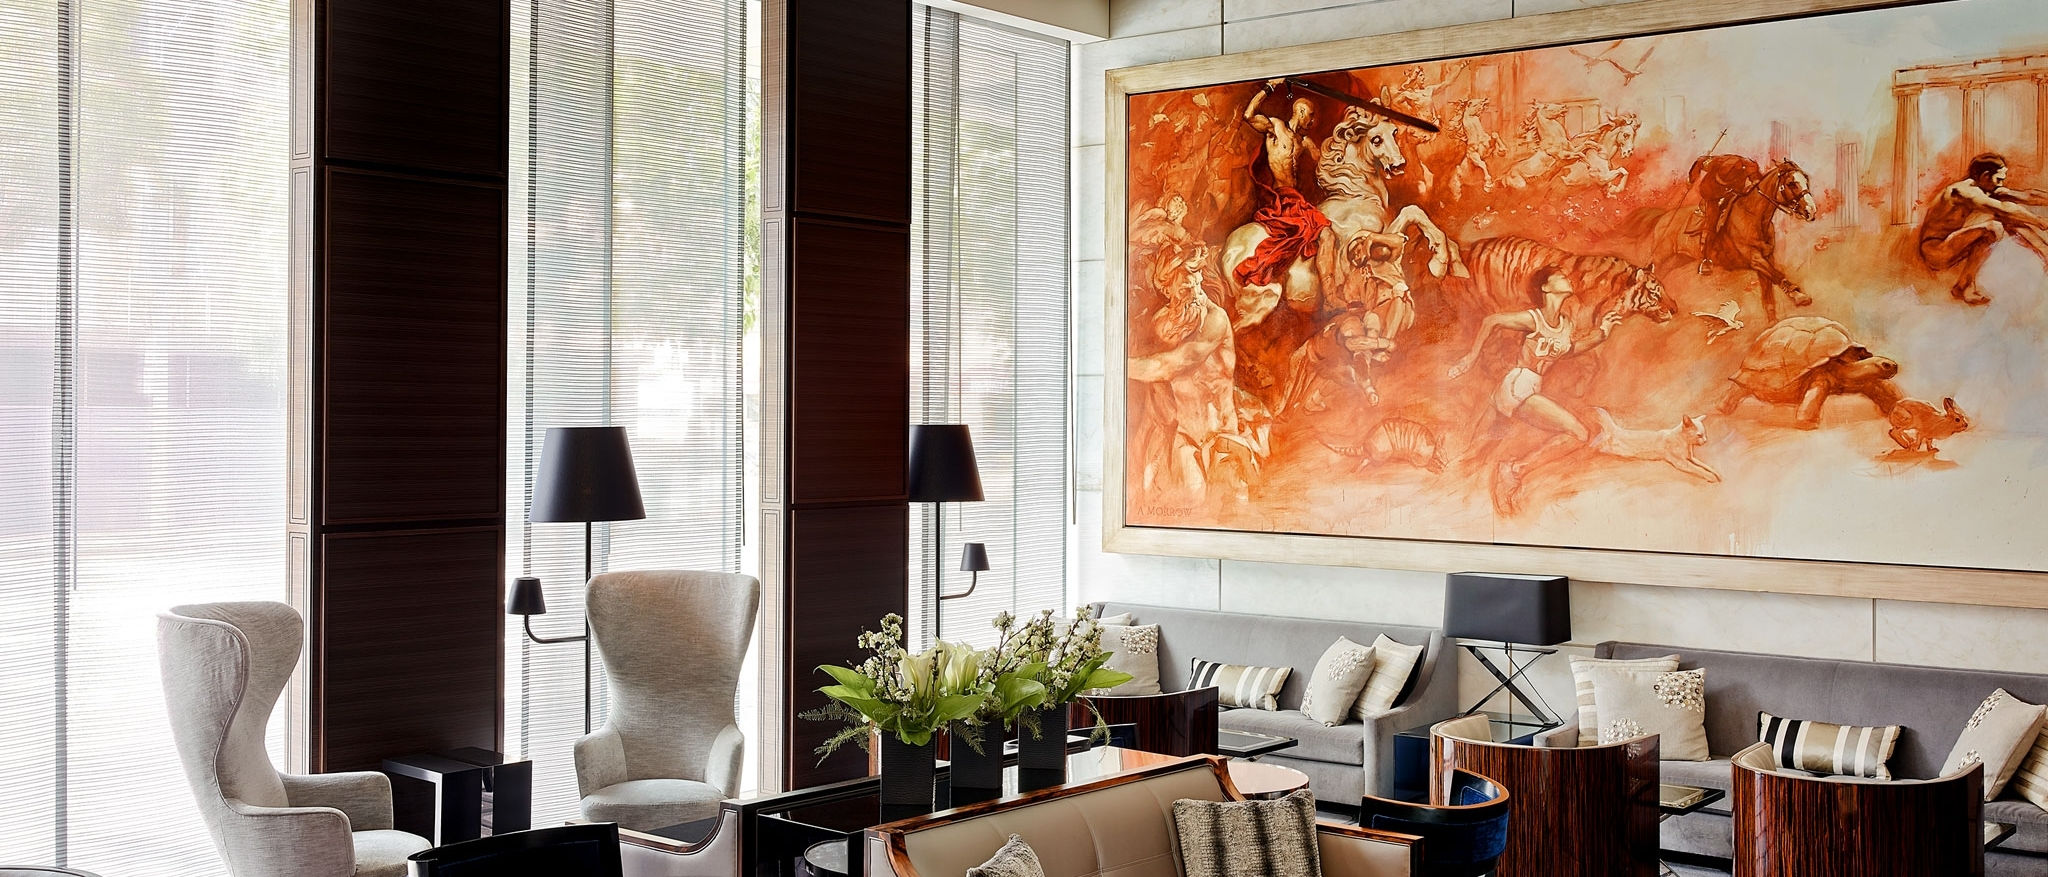 The luxurious lobby lounge, often seen on the way to the St. Regis hotel spa or pool